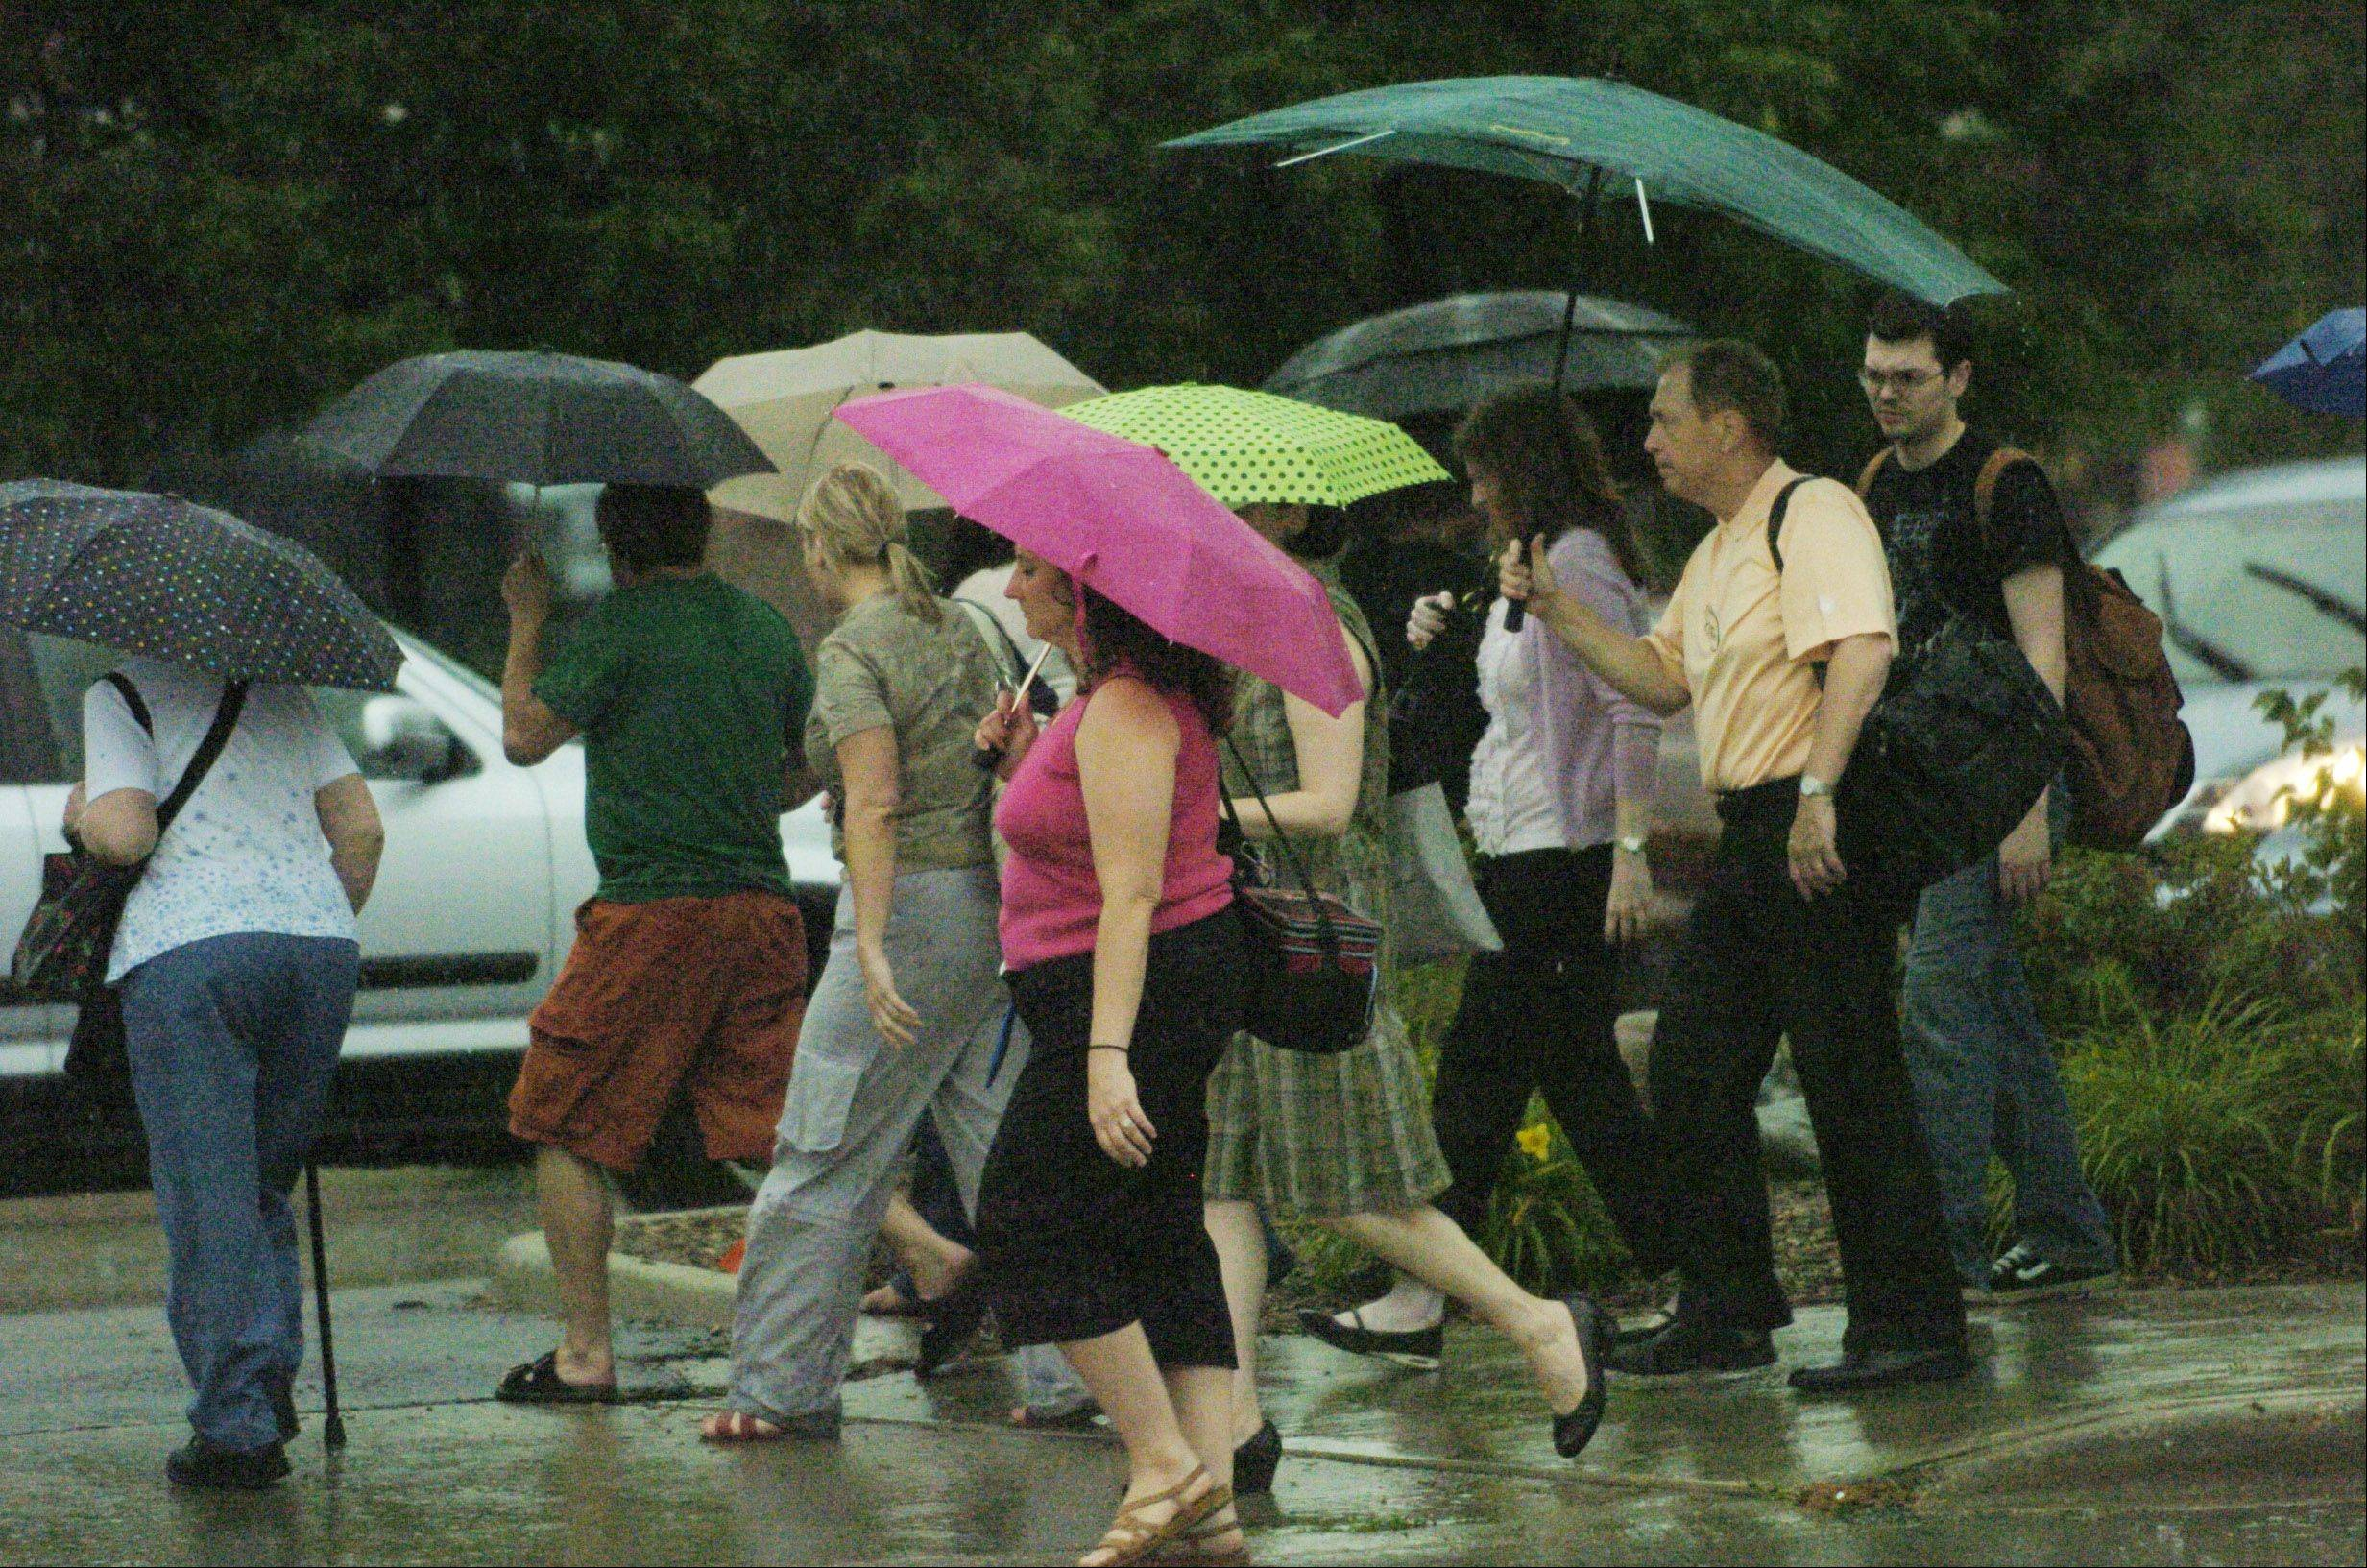 Daily Herald File PhotoCommuters should expect delays today because of rainstorms.